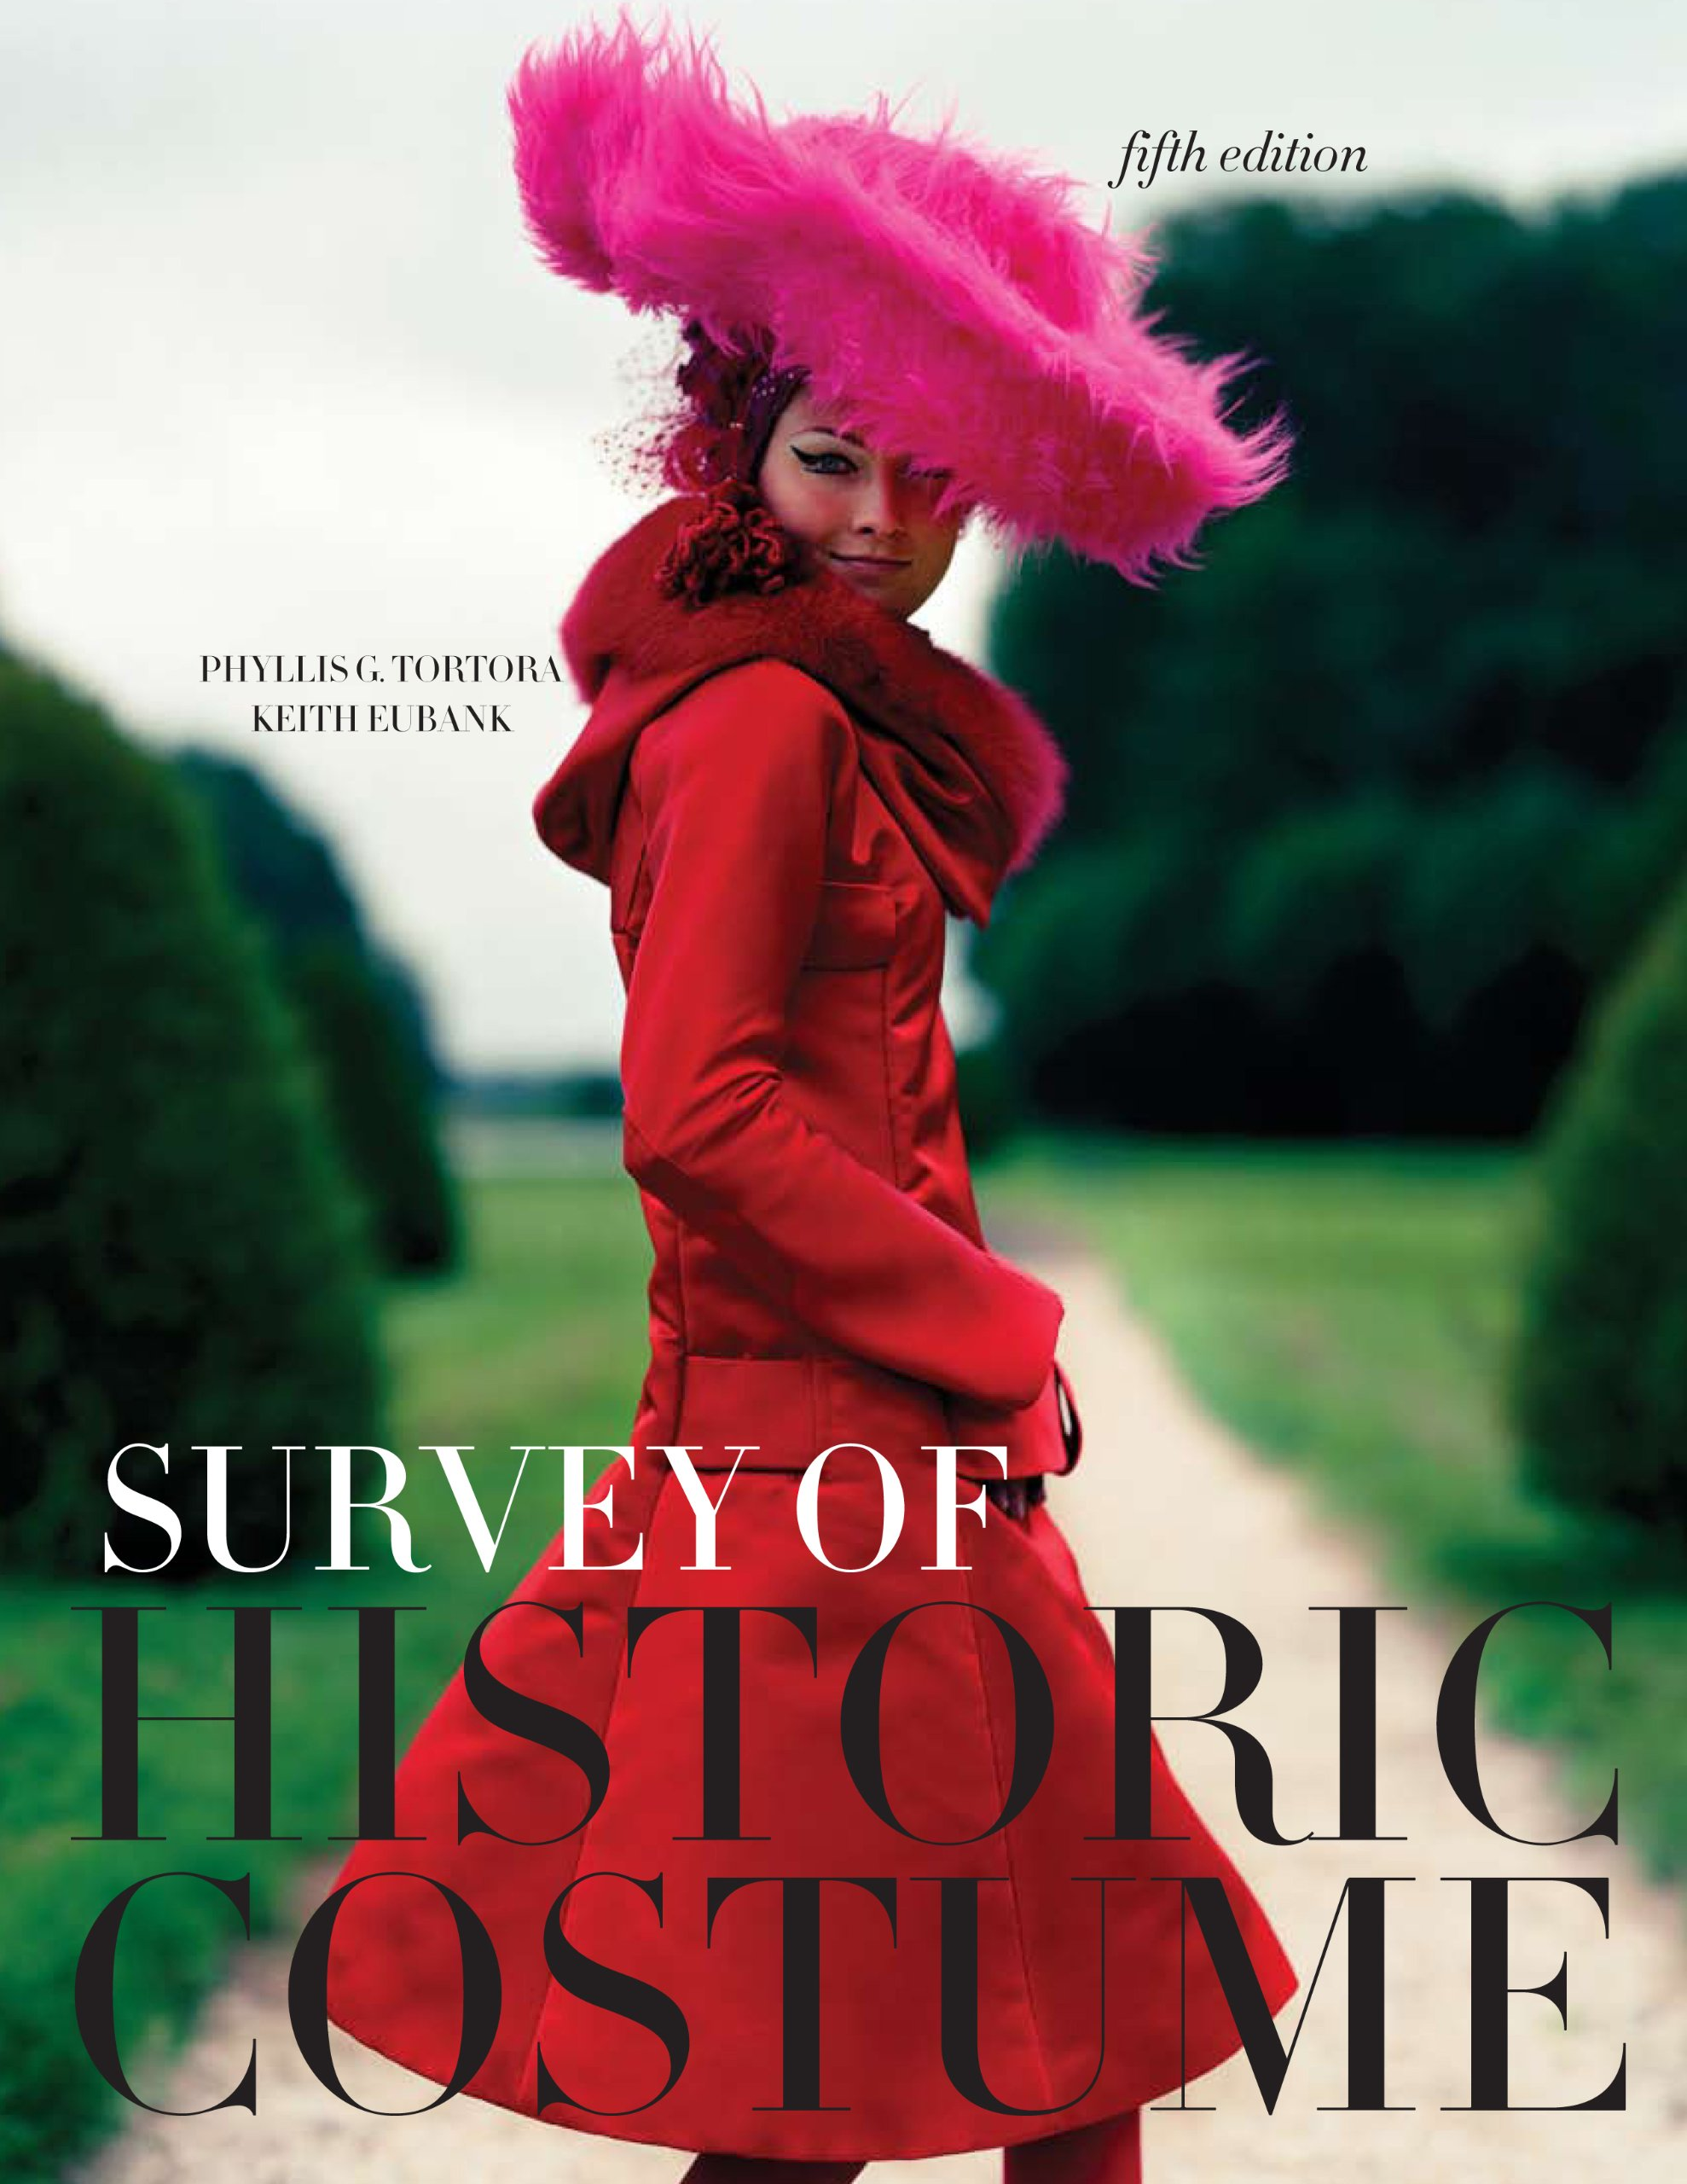 Survey of Historic Costume 5th edition with Free Student Study Guide Phyllis G. Tortora Keith Eubank 9781609012304 Books - Amazon.ca  sc 1 st  Amazon.ca & Survey of Historic Costume 5th edition with Free Student Study ...